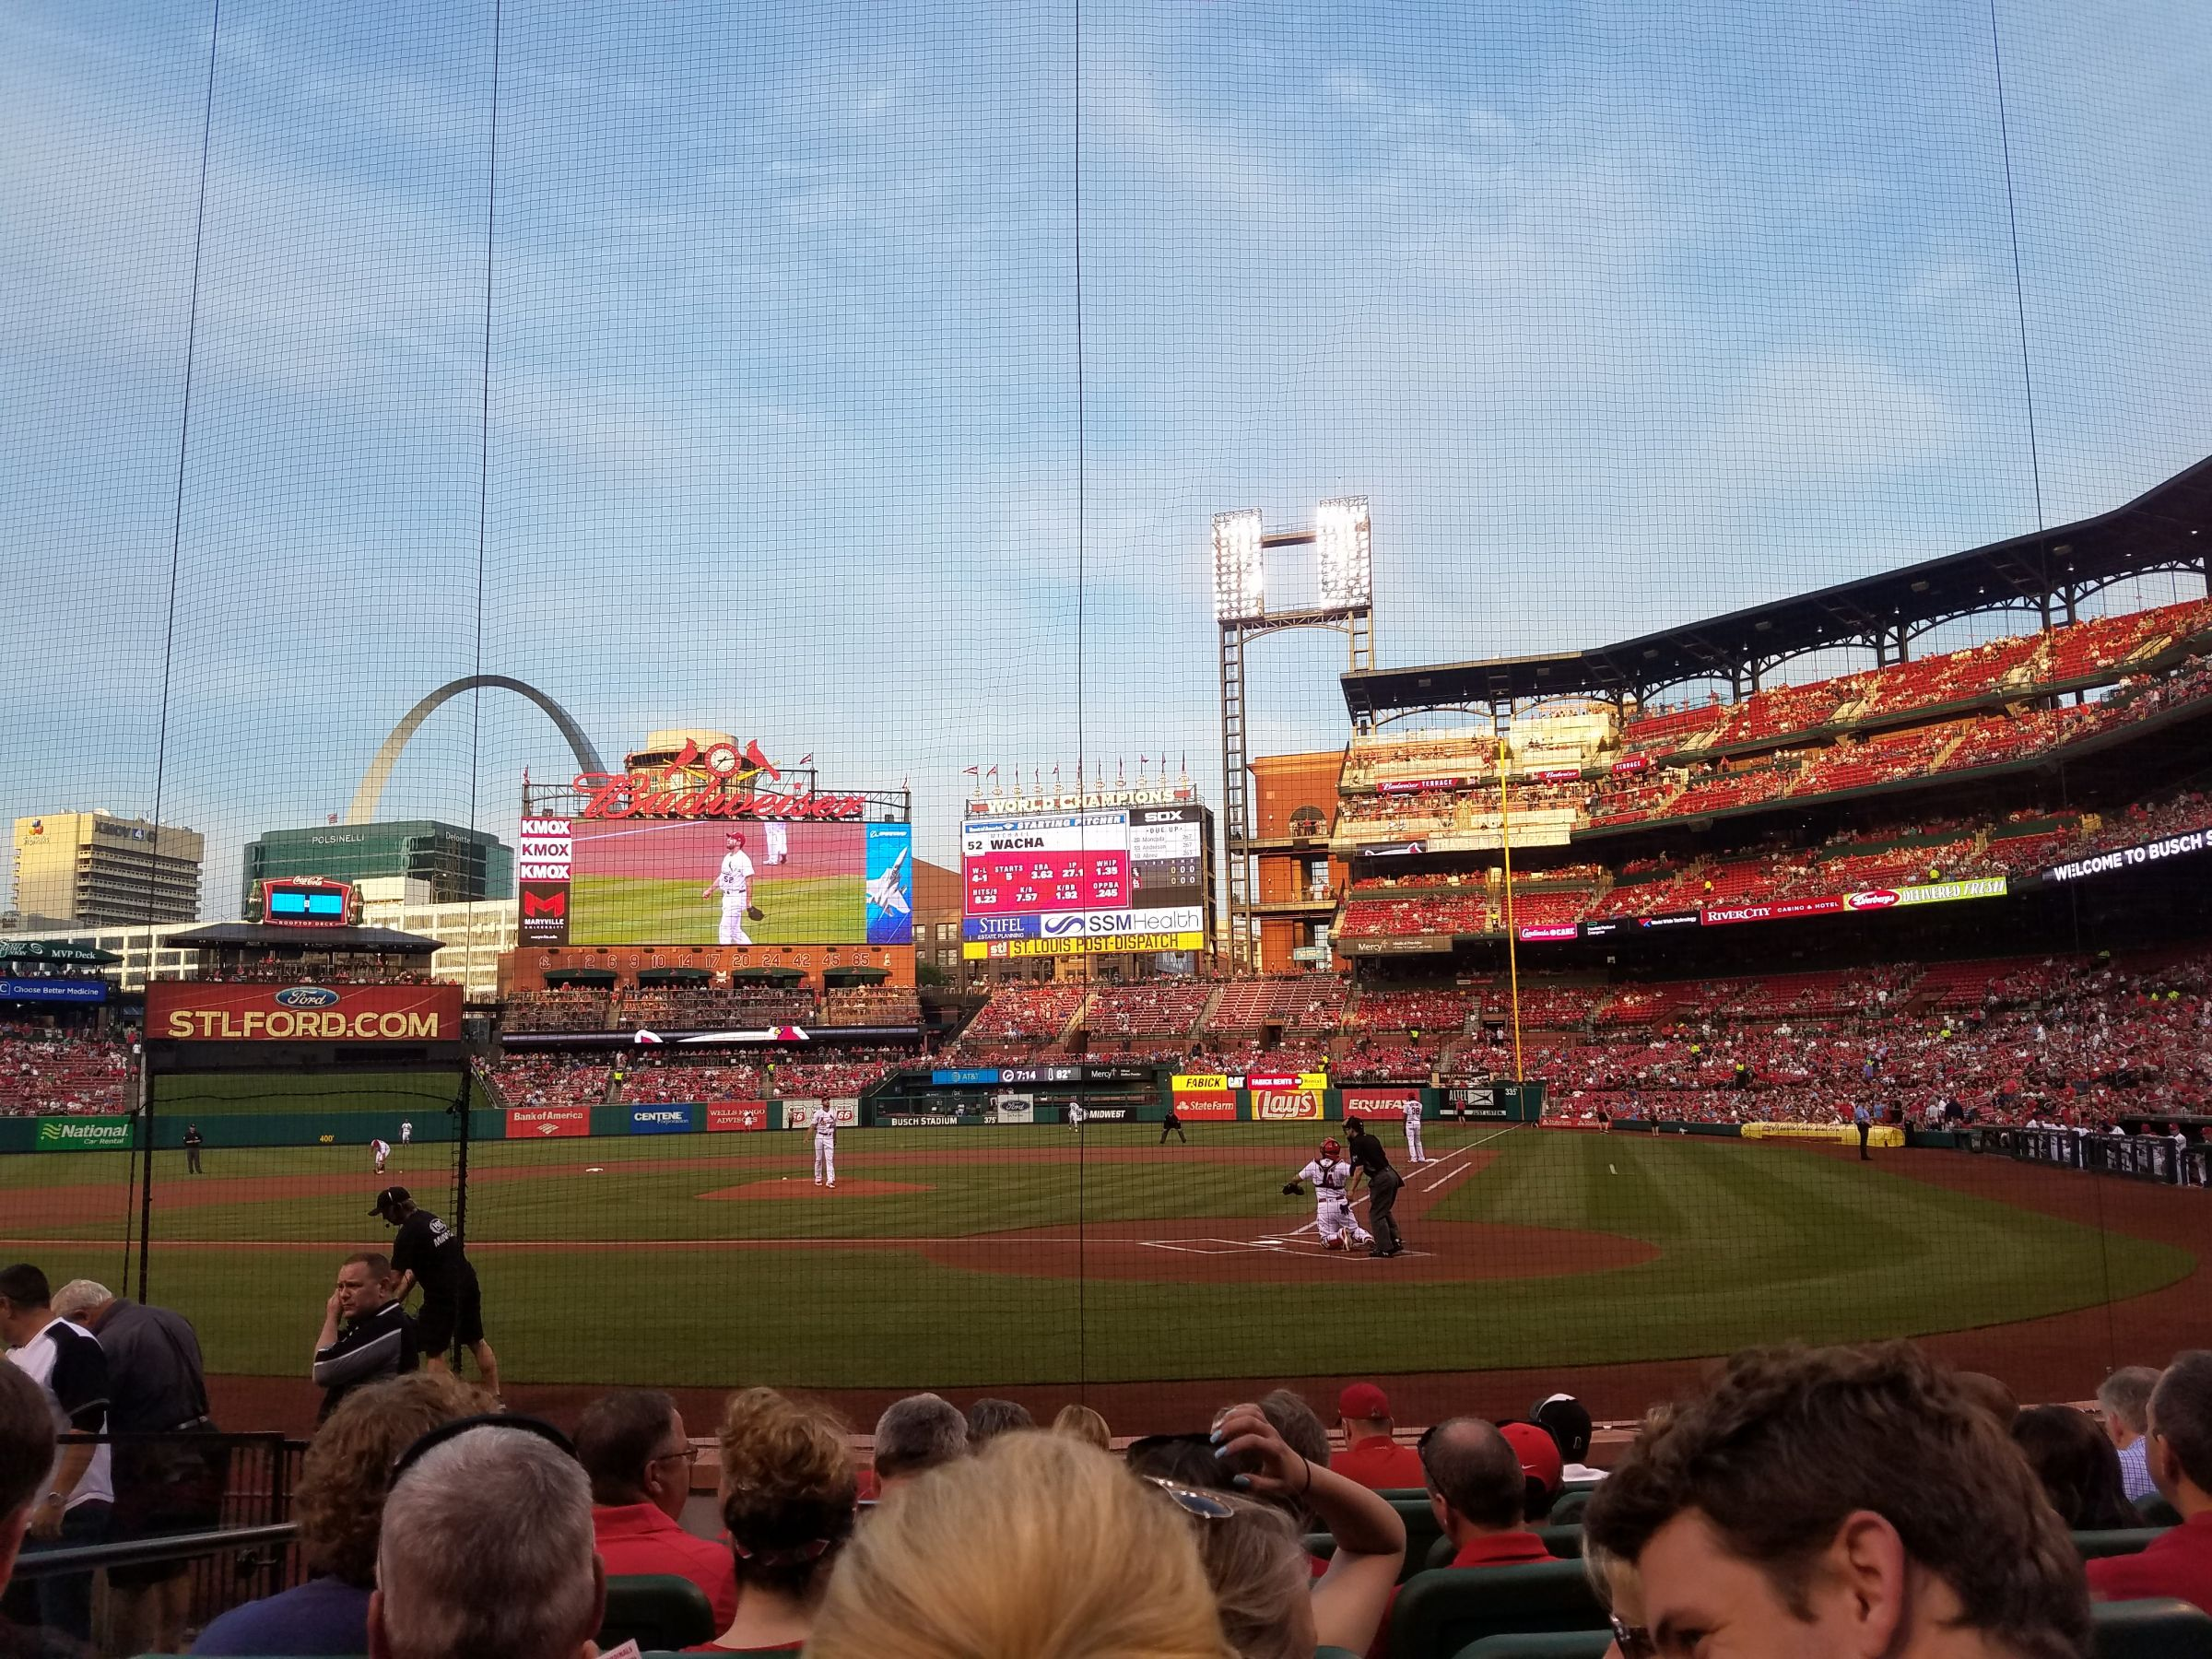 Seat View for Busch Stadium Cardinals Club 6, Row H, Seat 6